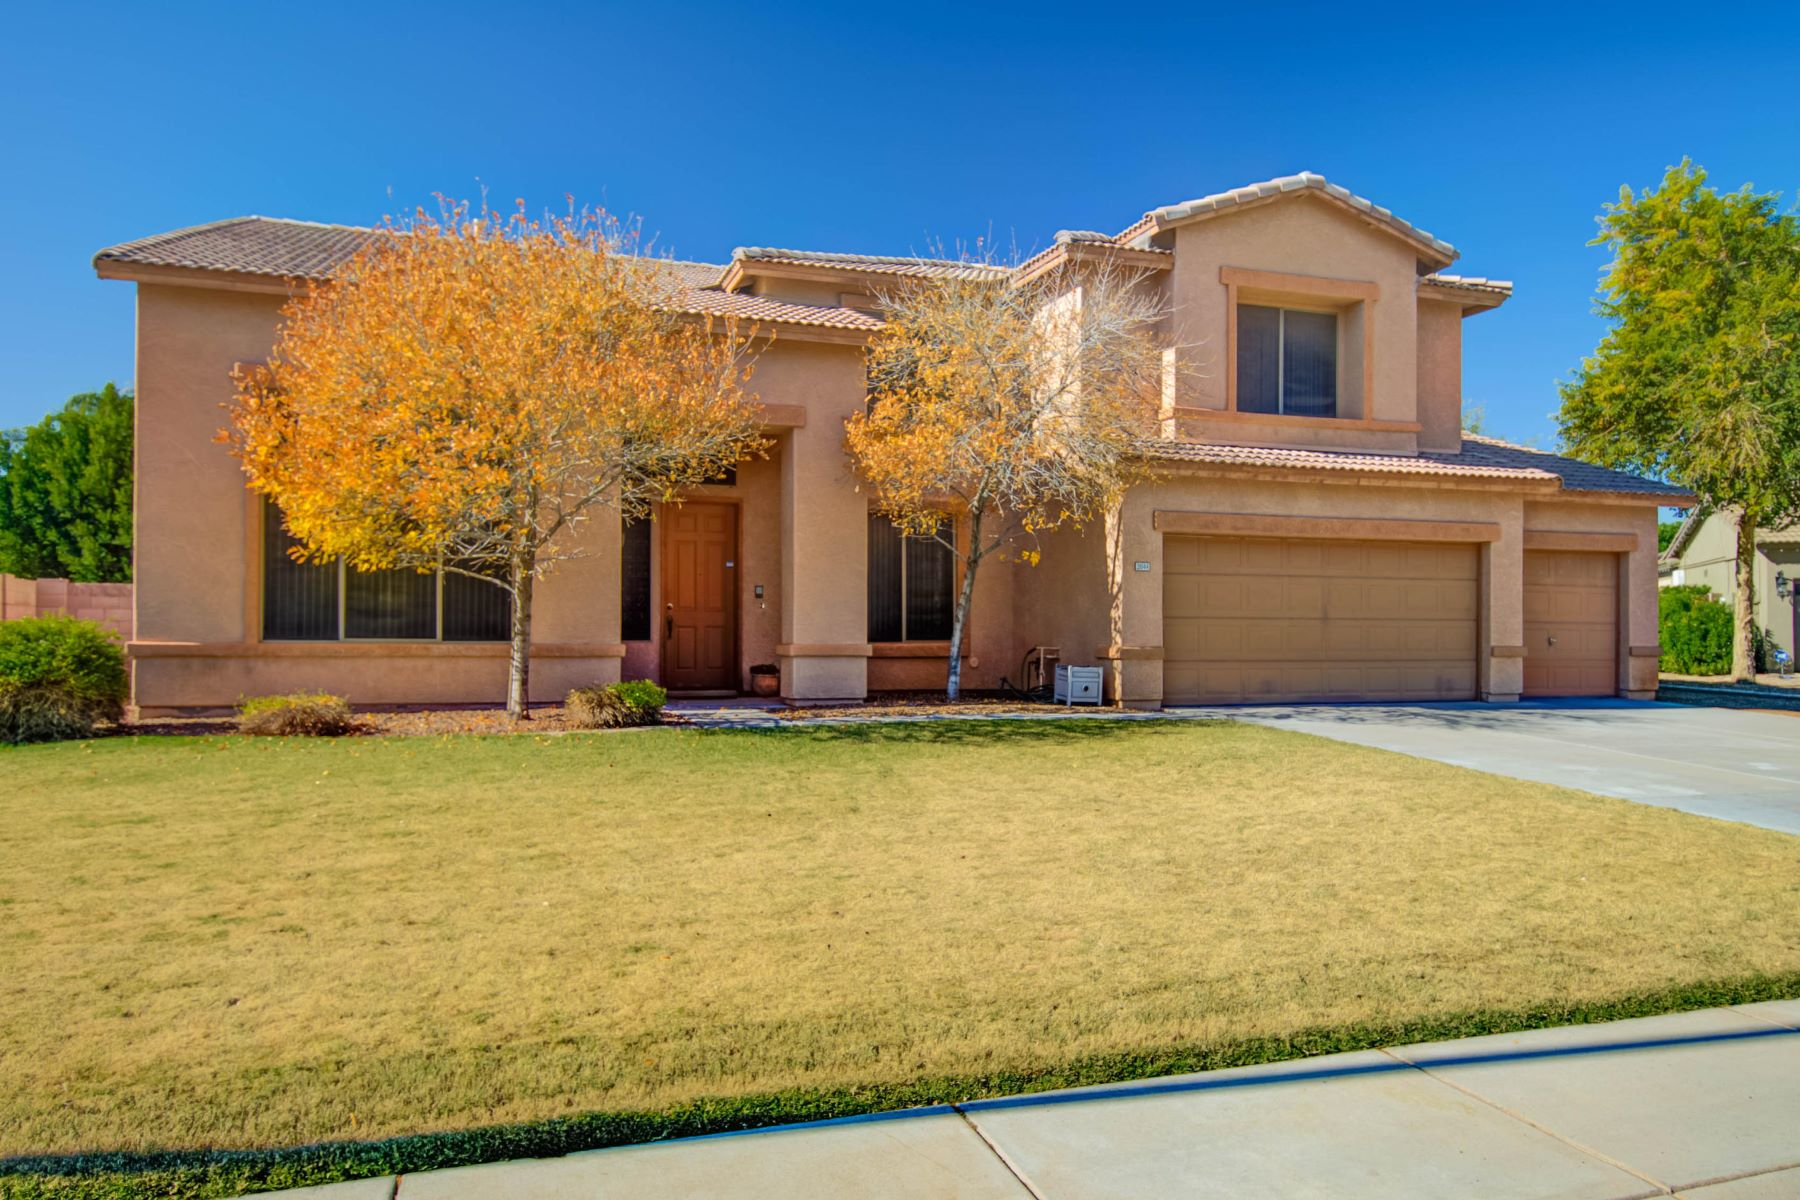 Single Family Home for Sale at Impeccable Unique Family Home 2044 S Stuart Ave, Gilbert, Arizona, 85295 United States